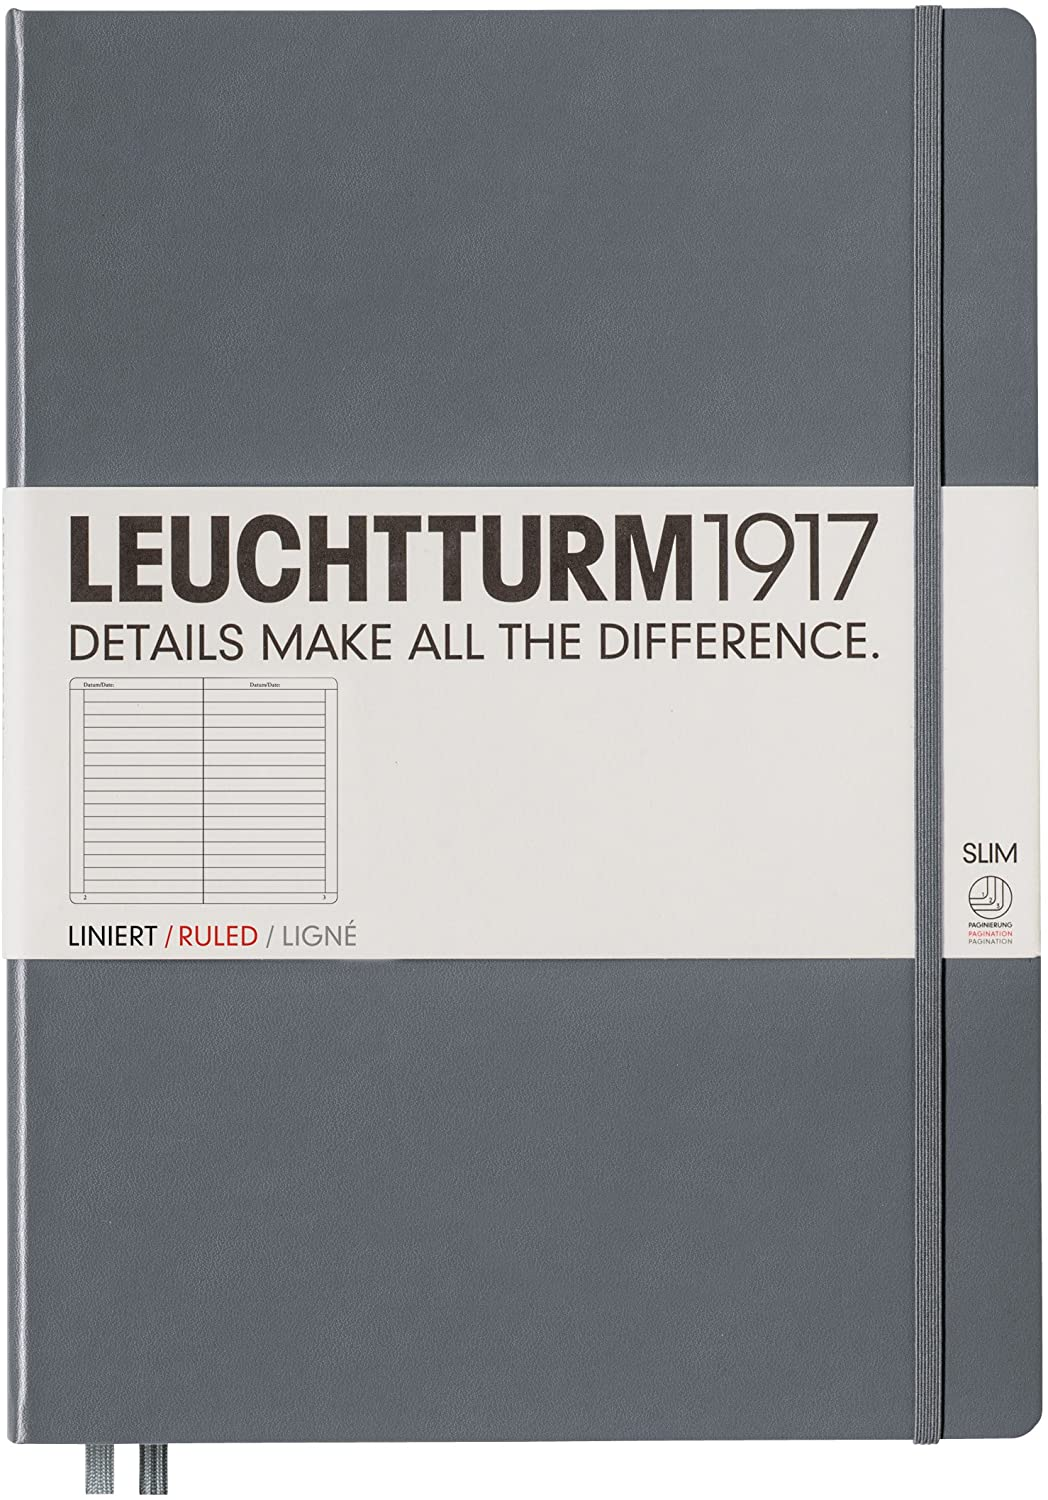 Leuchtturm1917 Master Slim Hardcover Ruled Notebook- 121 Numbered Pages, Anthracite